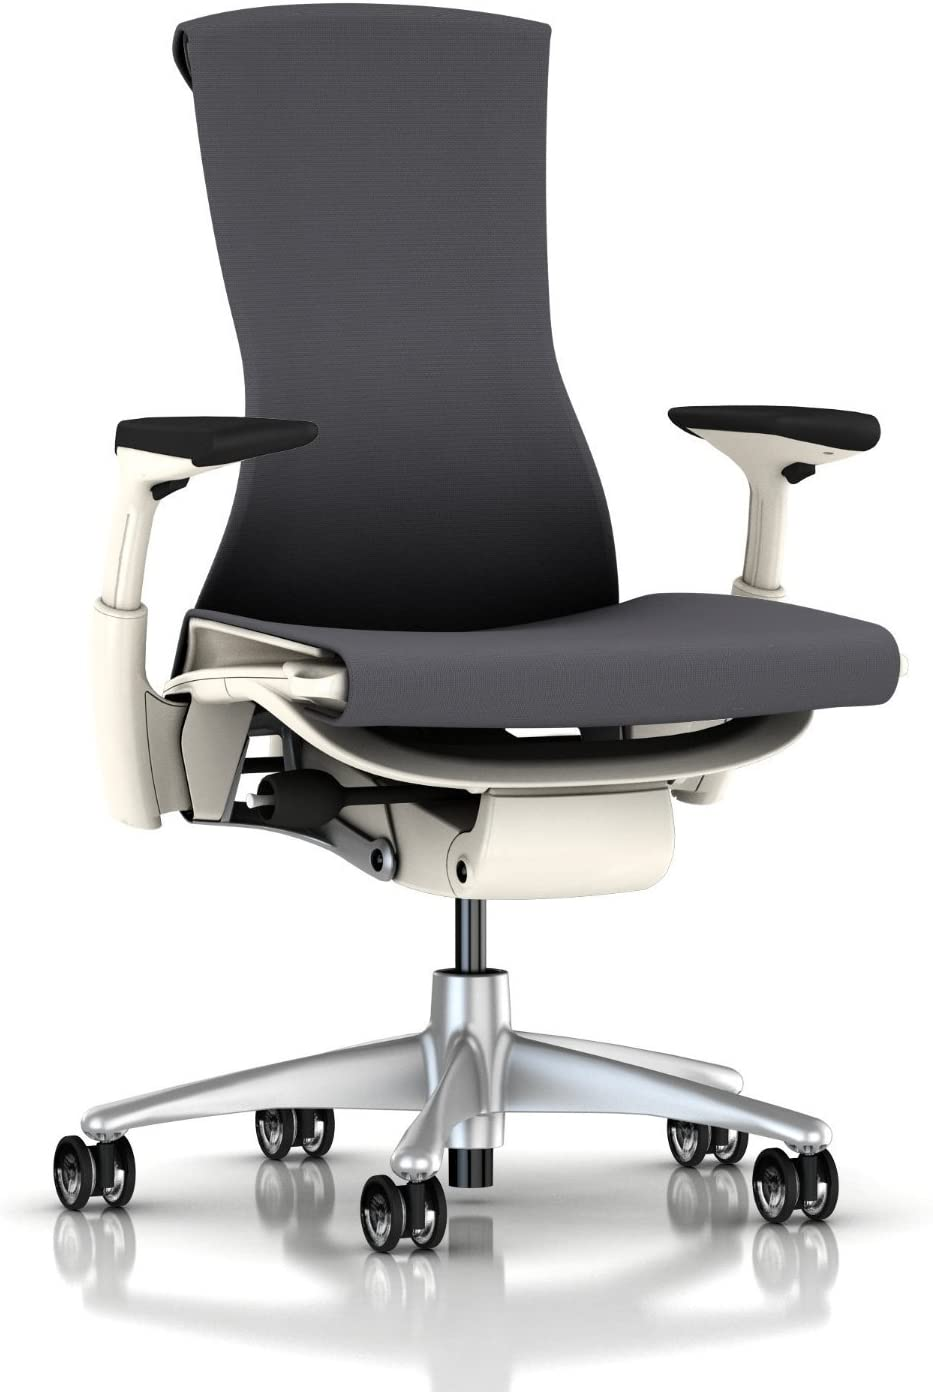 61sMV4CyEqL. AC SL1500 - What is The Best Computer Chair For Long Hours Sitting? [Comfortable and Ergonomic] - ChairPicks